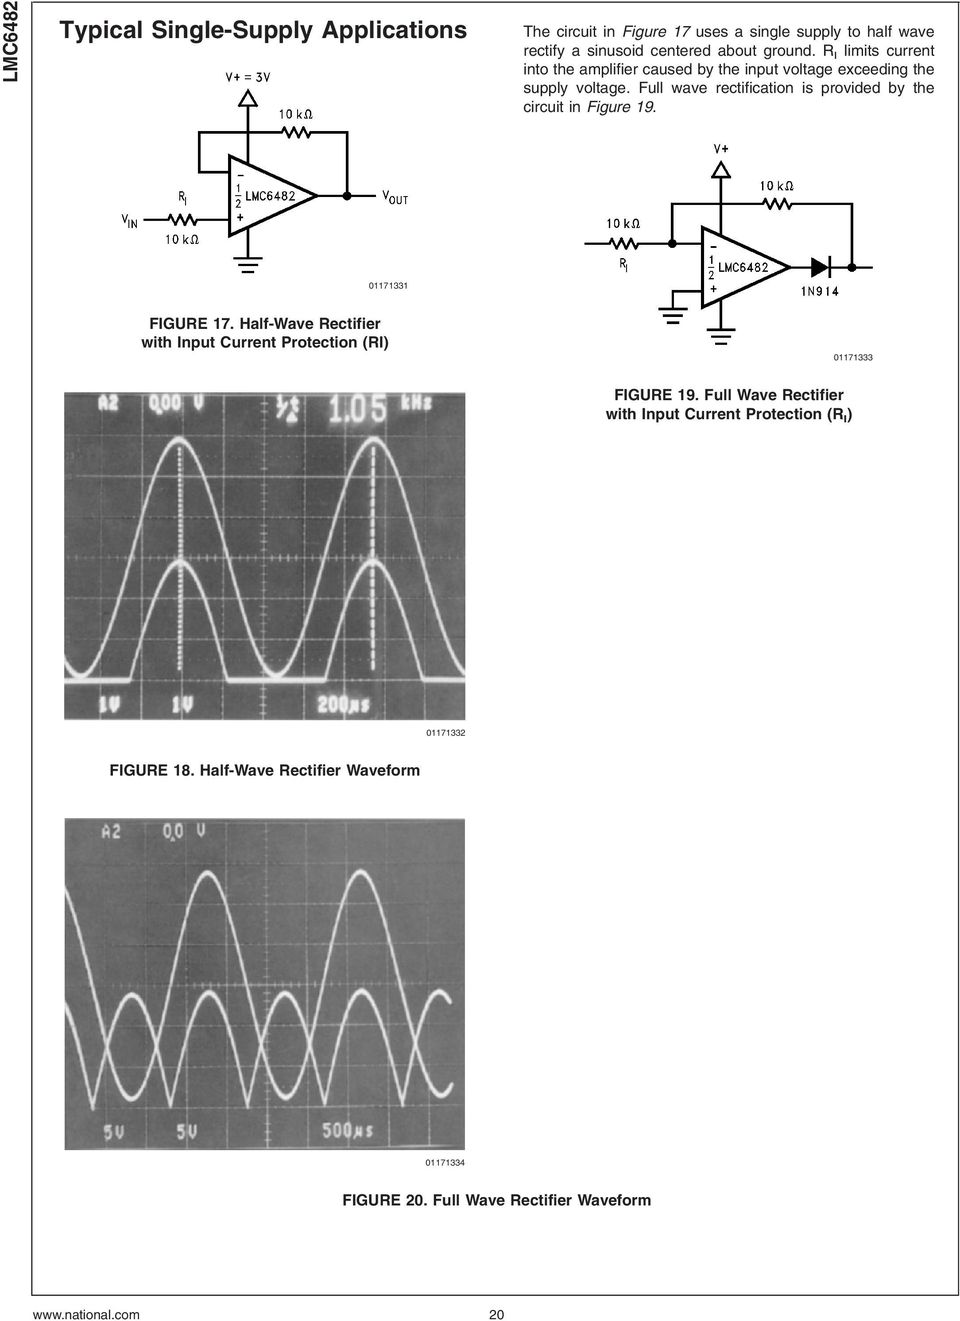 Full wave rectification is provided by the circuit in Figure 19. 01171331 FIGURE 17.